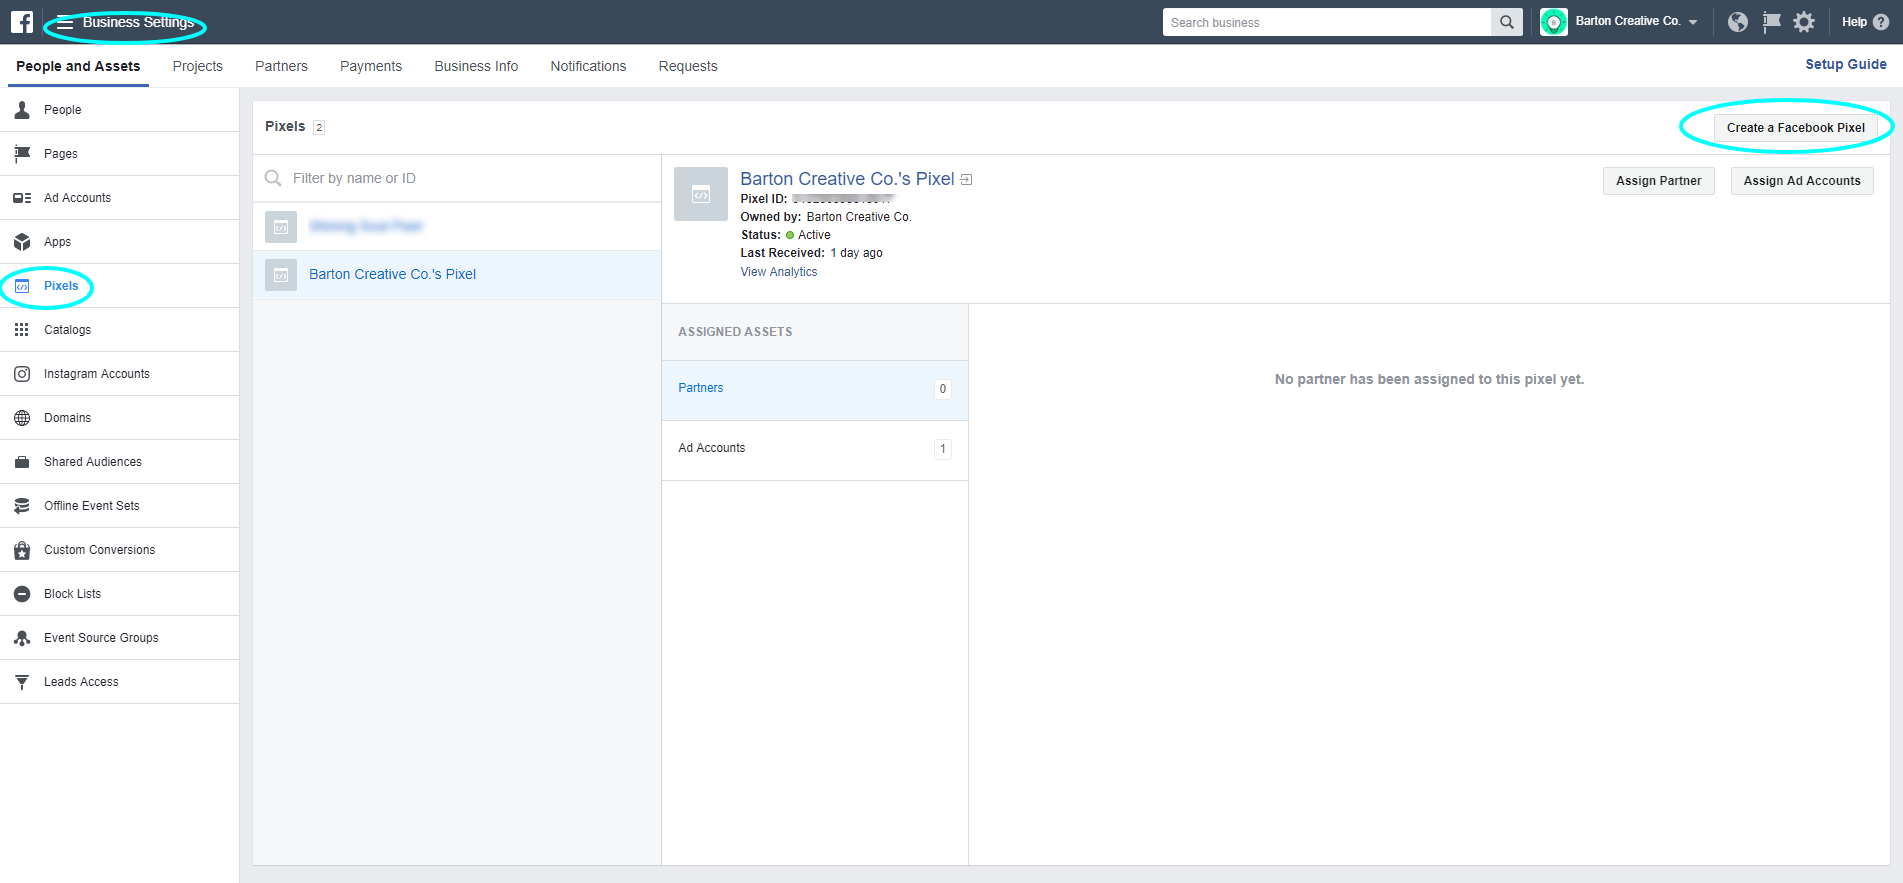 Facebook Business Manager Pixel settings | Facebook Pixel and Advertising 101: A How-To Guide for Small Businesses | Barton Creative Co.